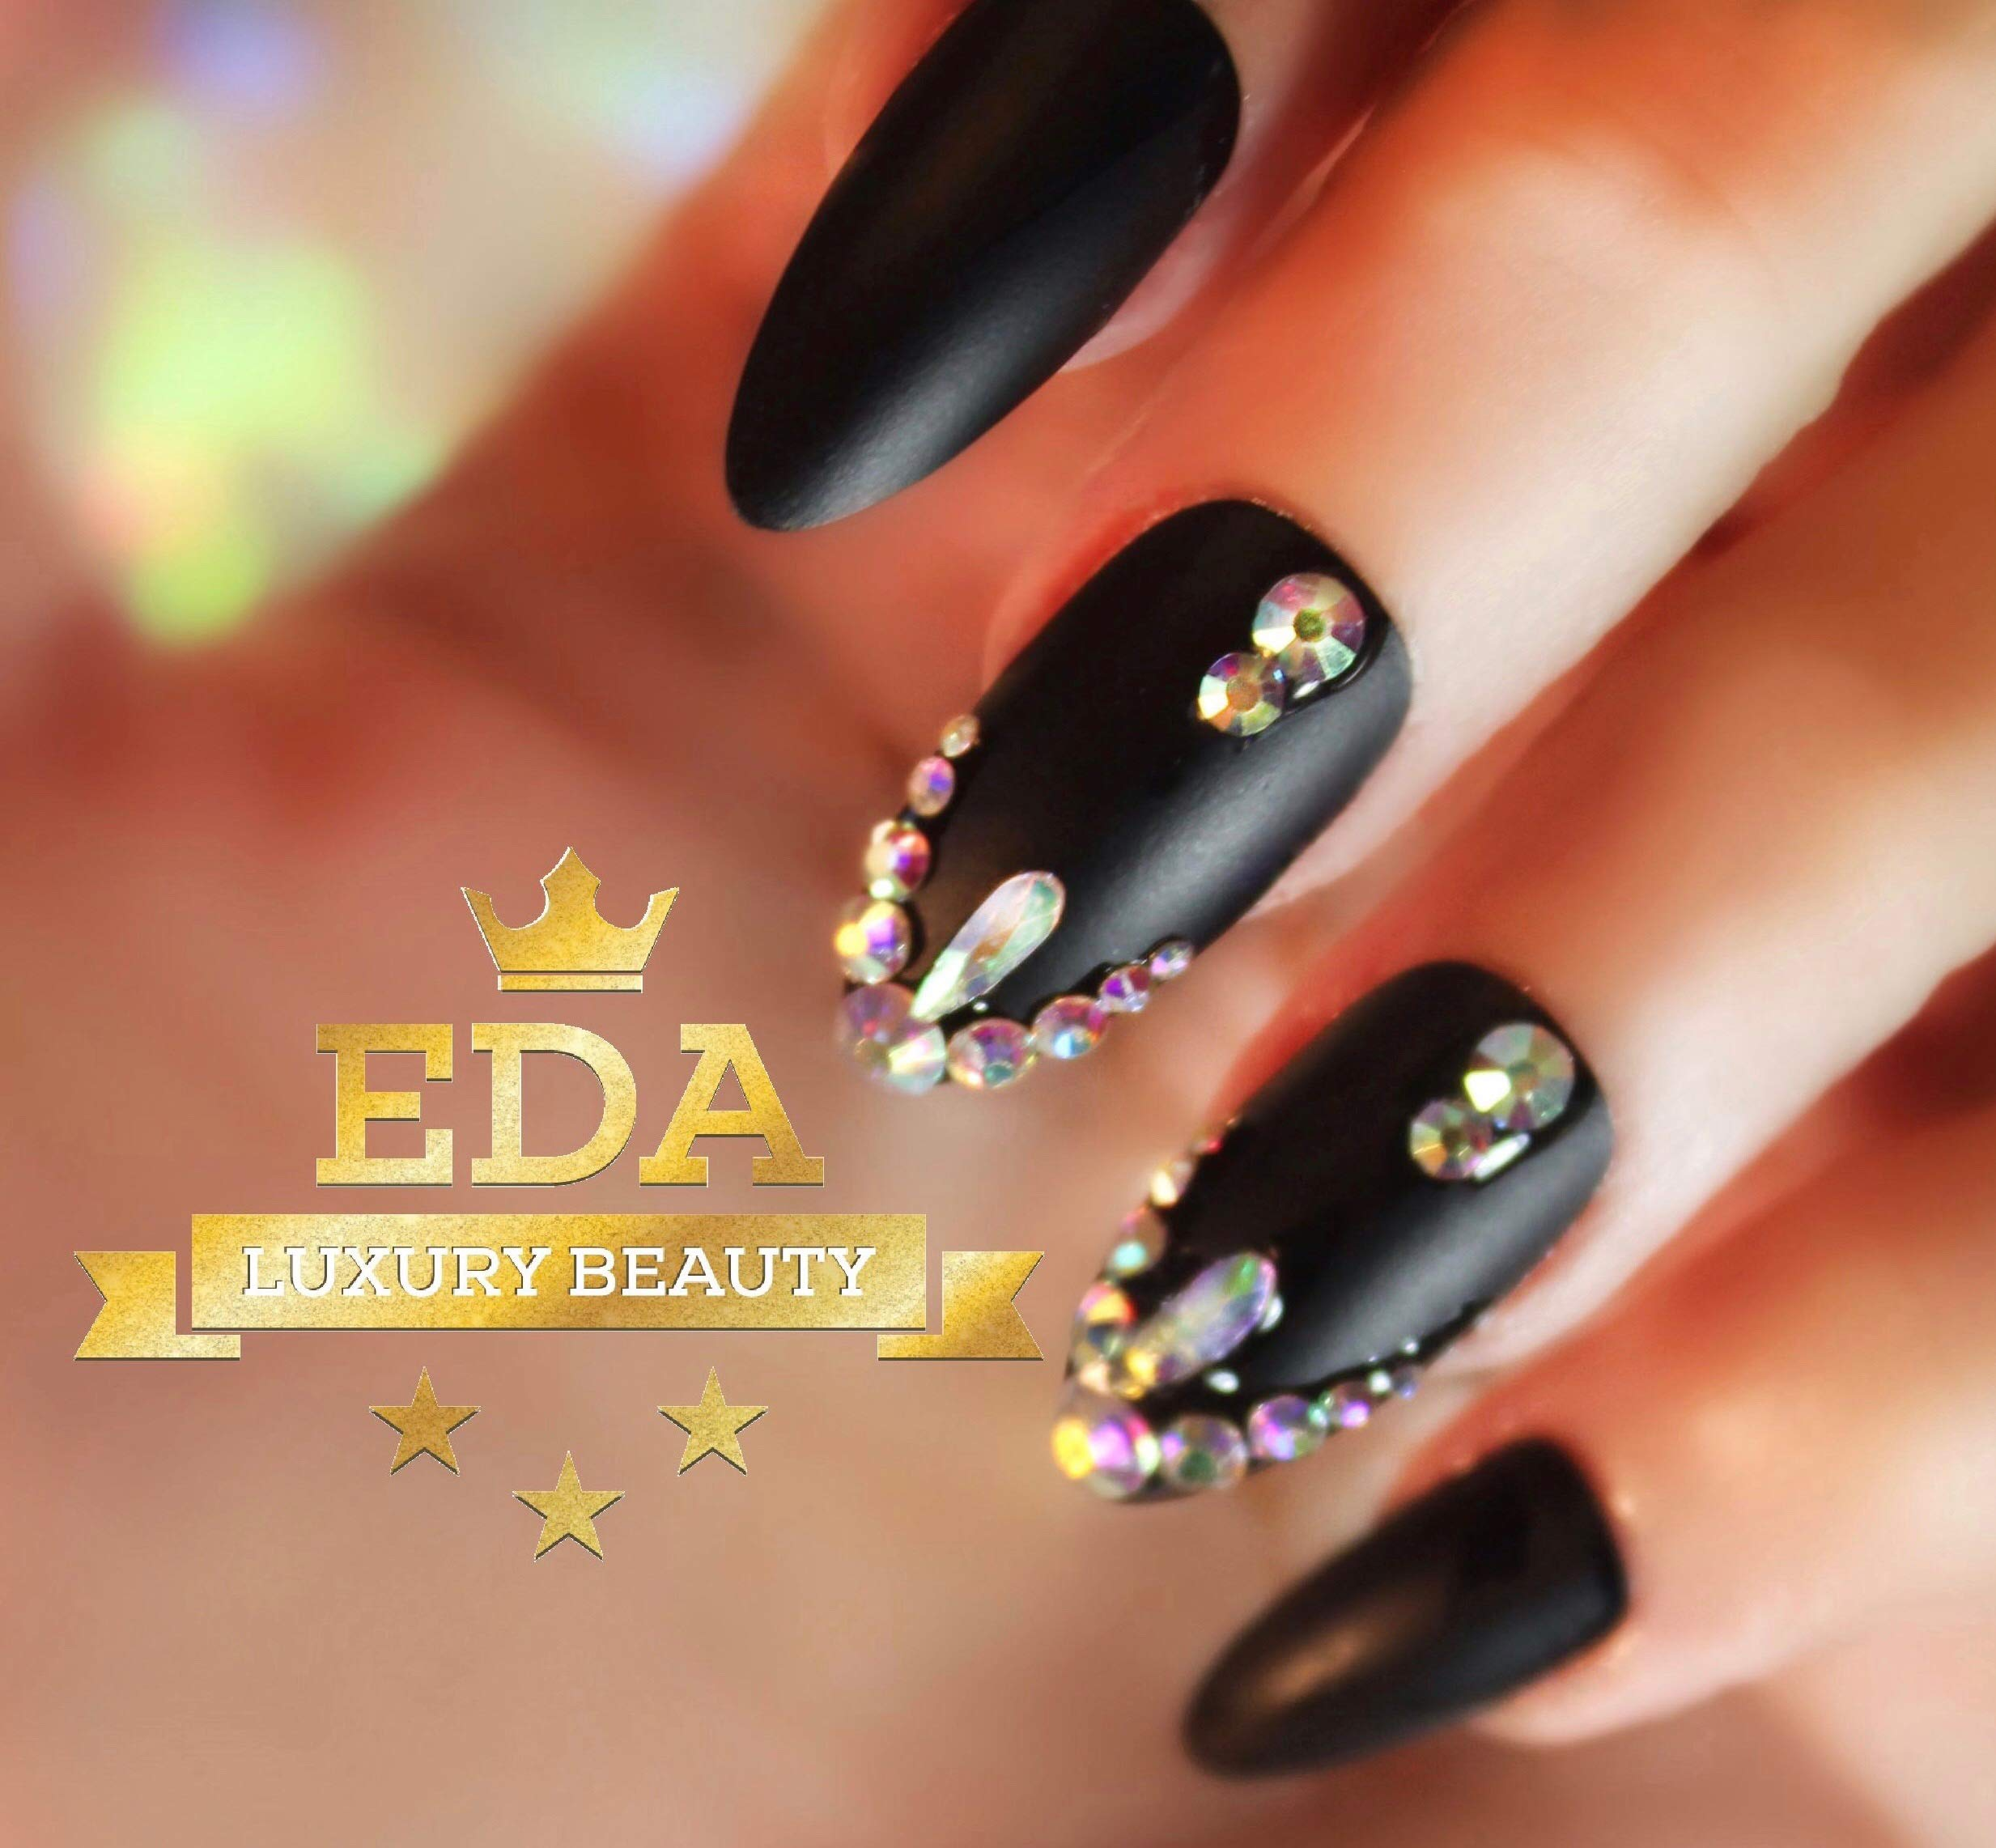 EDA Luxury Beauty Matte Black 3D Ultimate Glamorous Jewel Design Gel Glitter Full Cover Press On Artificial Tips Perfect False Nails Extra Long Oval Round Almond Stiletto Super Glam Fashion Fake Nails by EDA LUXURY BEAUTY